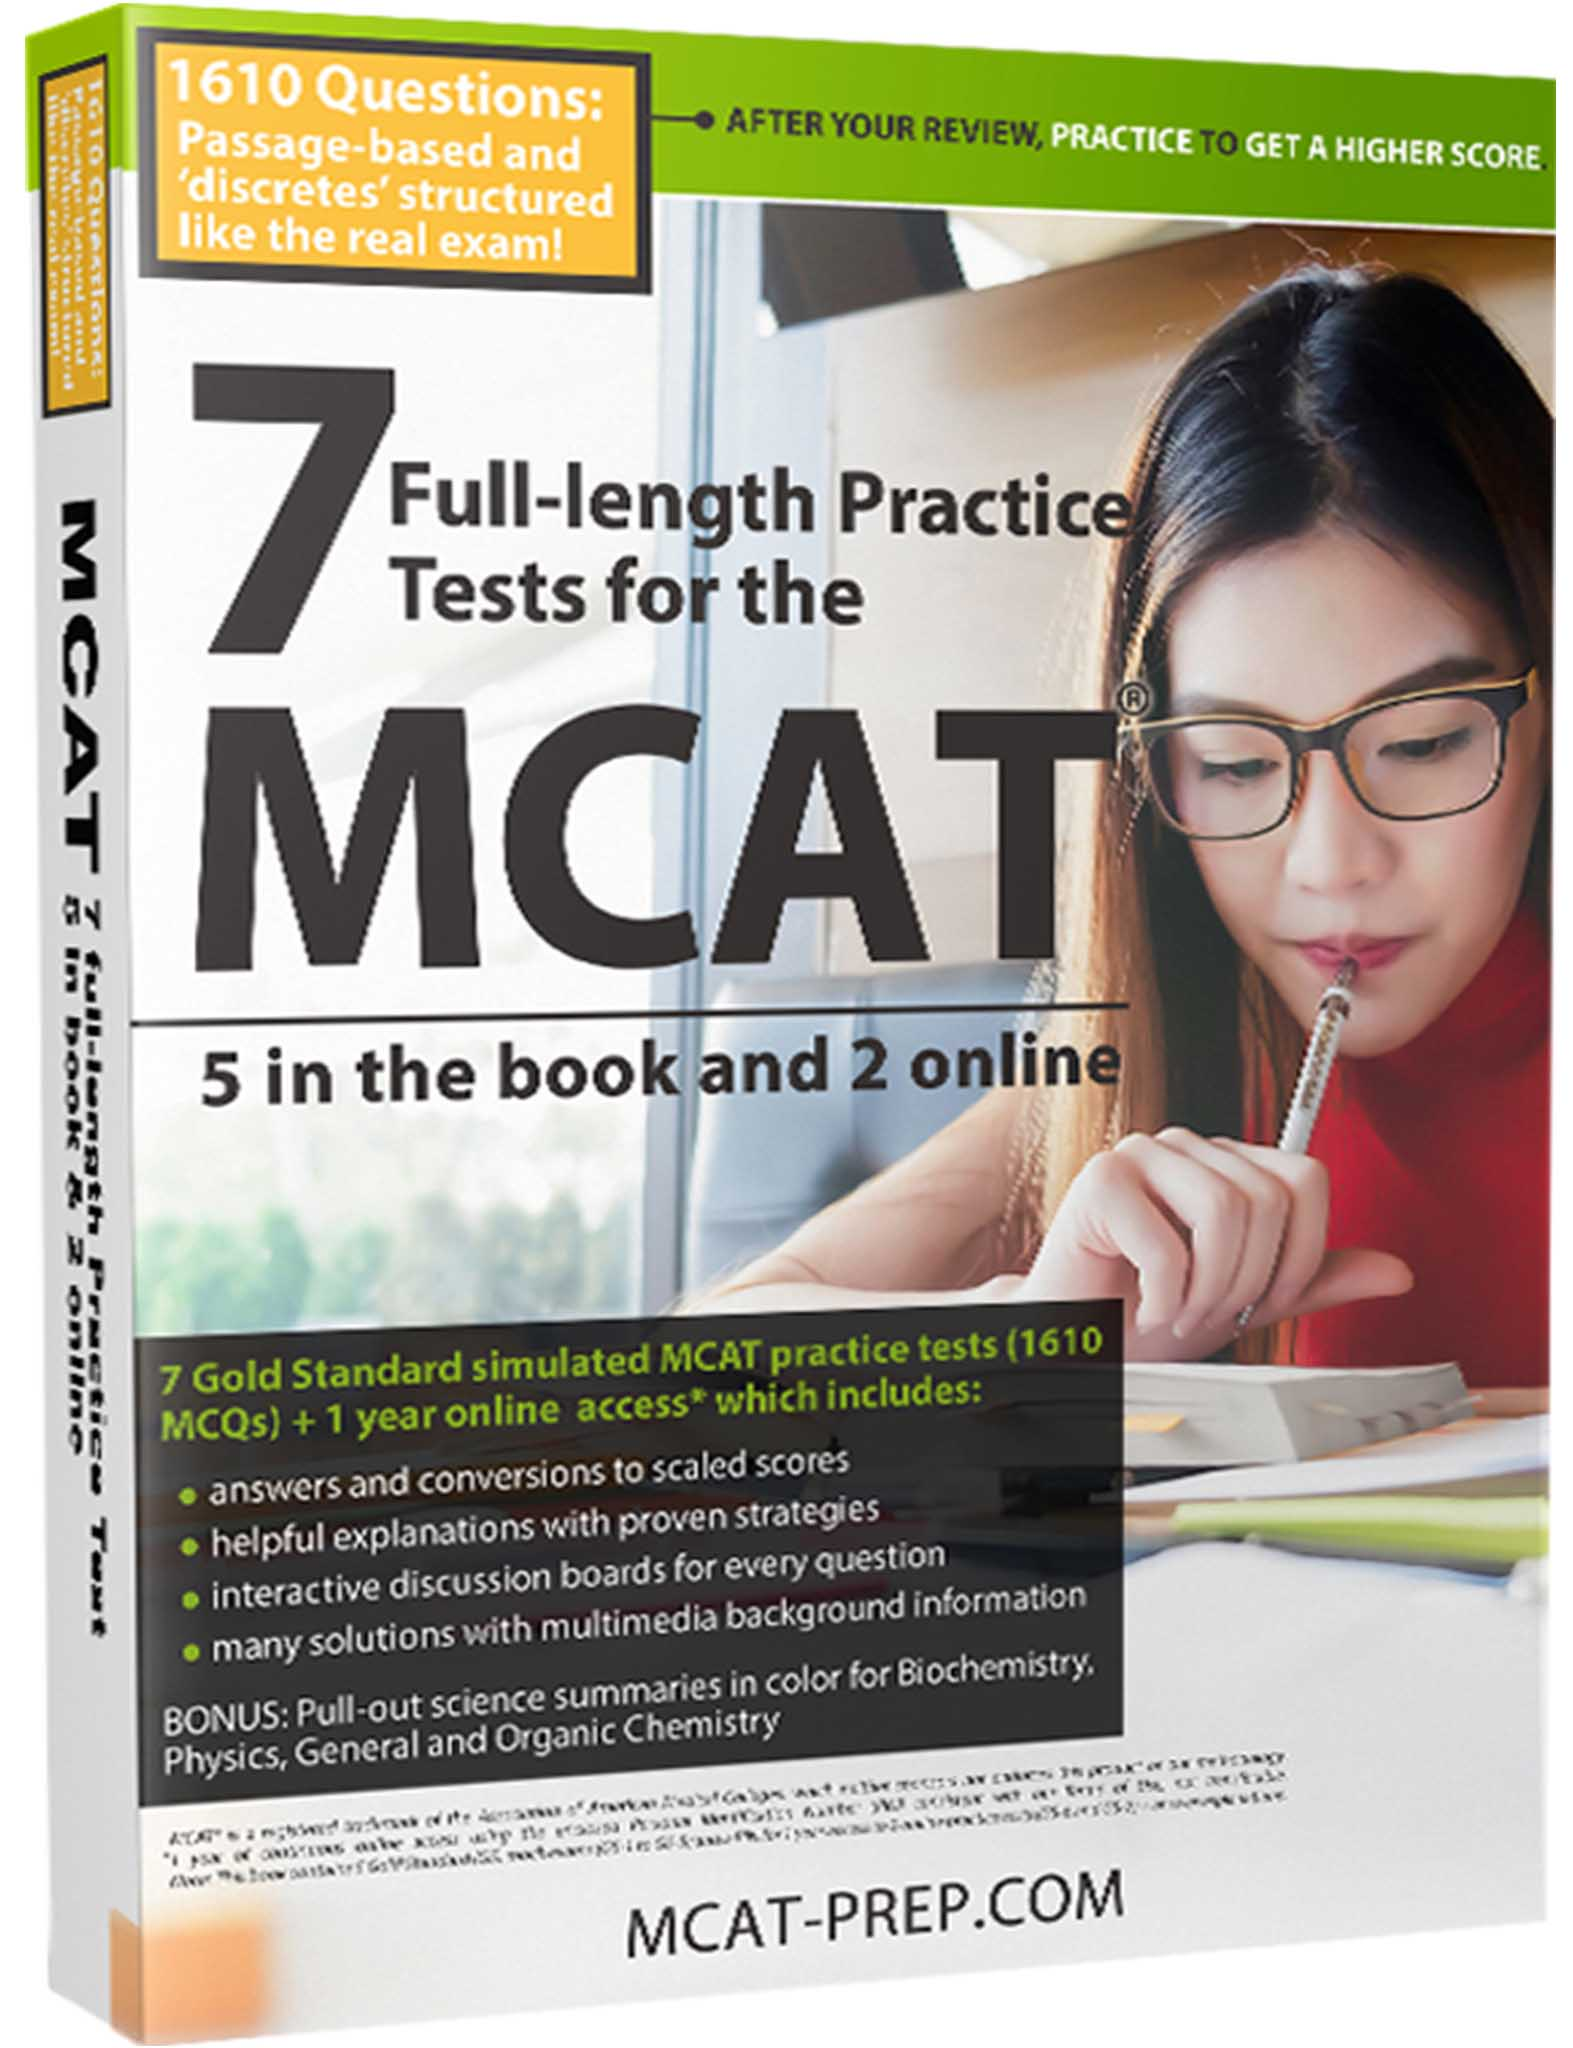 Gold Standard MCAT Guide 7 exams MCAT practice tests book